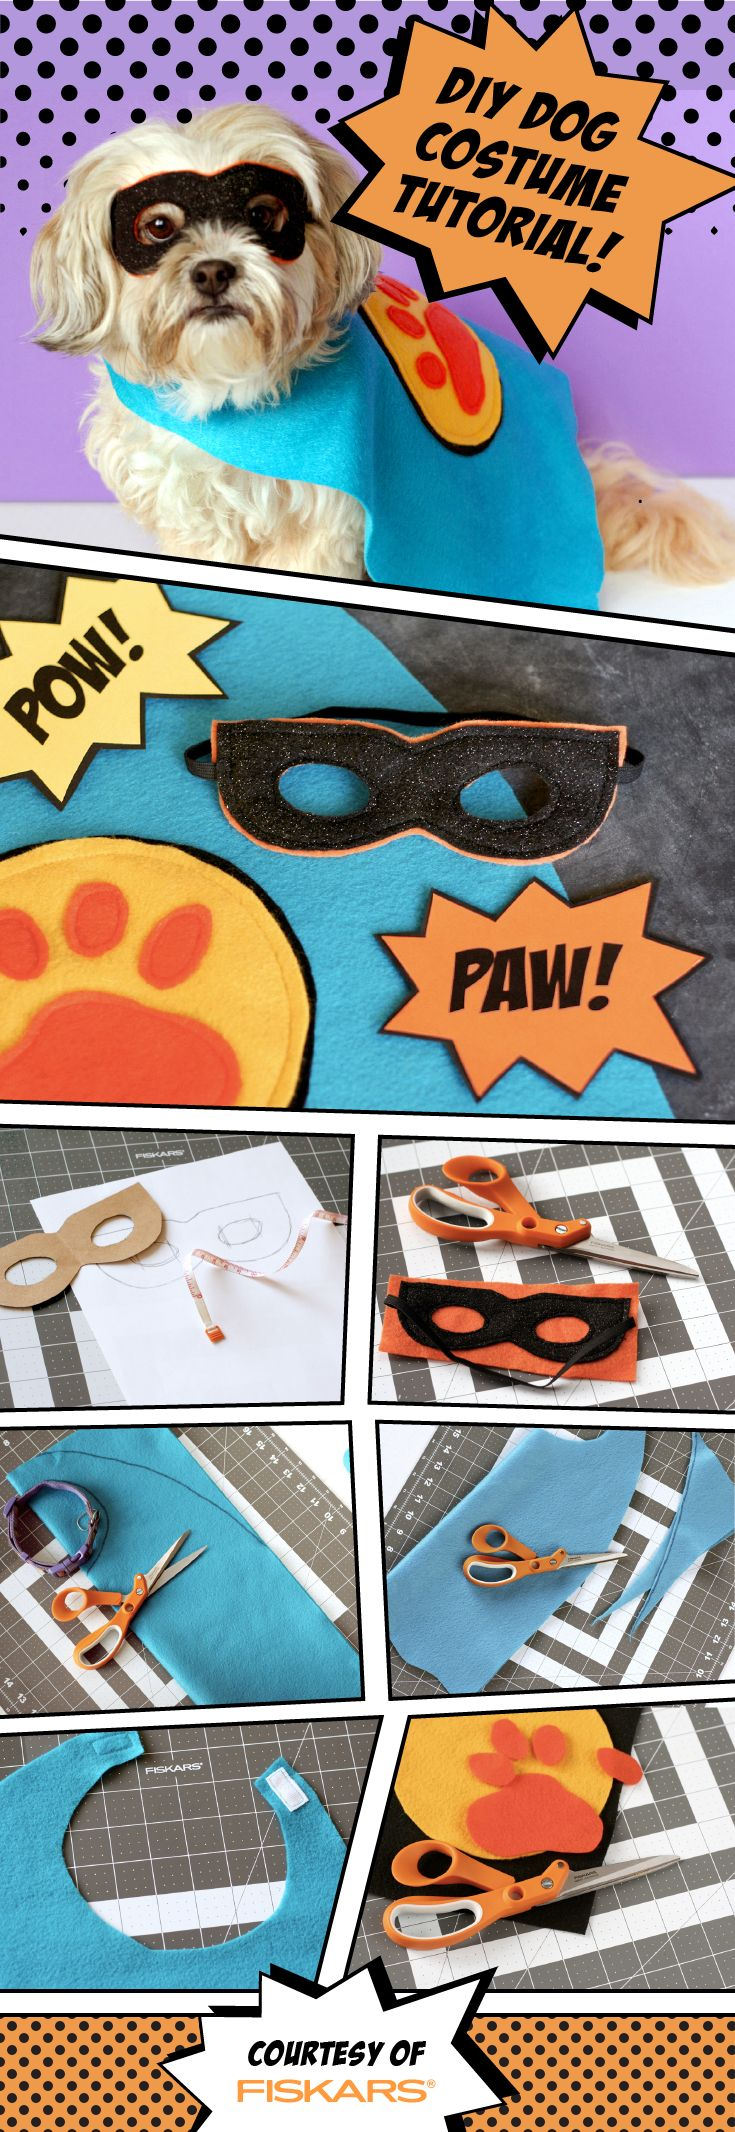 Craft up a simple super hero costume for your dog this Halloween. All you need is a cape and mask. Working with felt is great for quick costumes since you do not need to worry about hemming, fraying, etc.